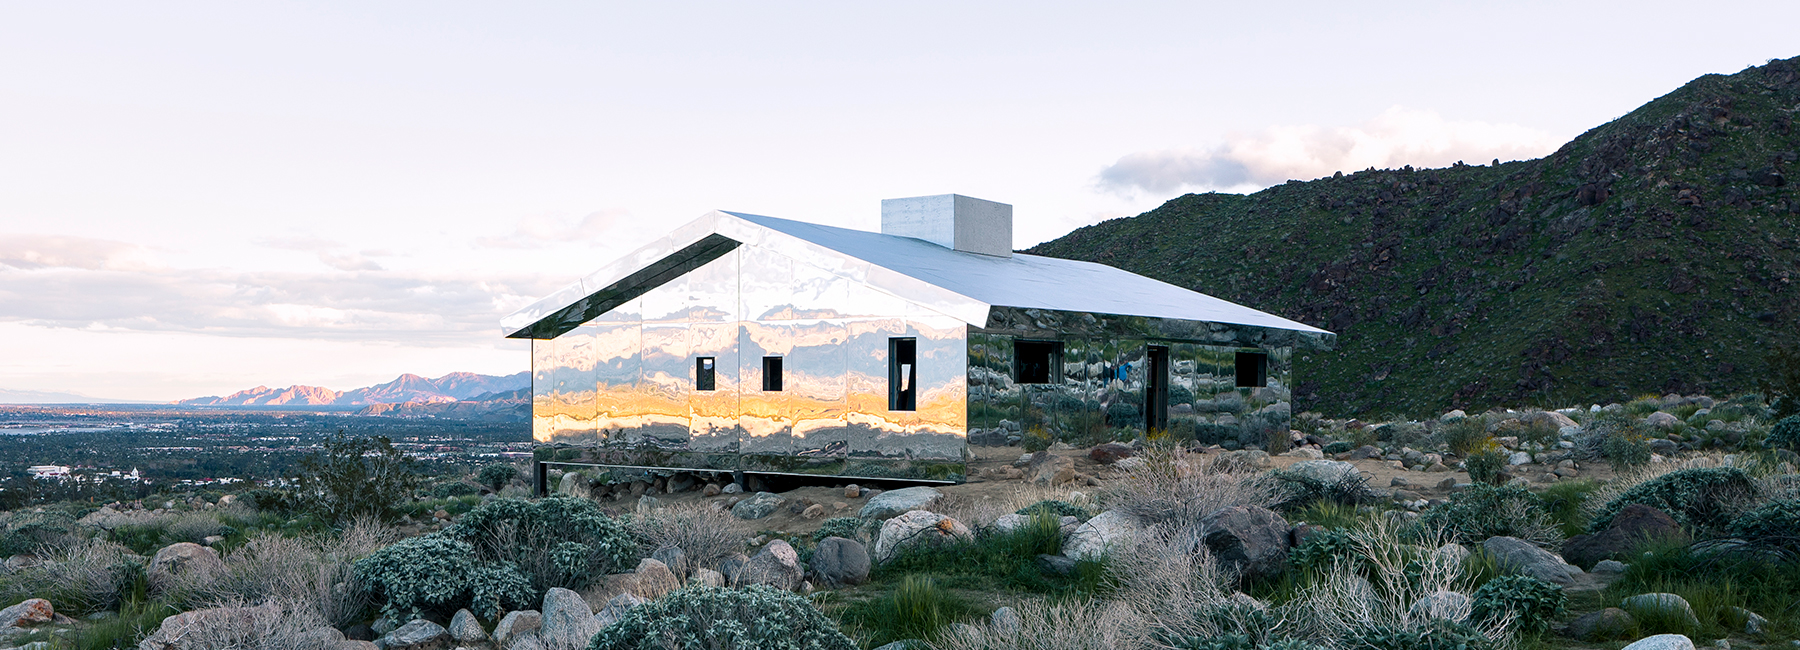 6 stunning examples of mirrored architecture